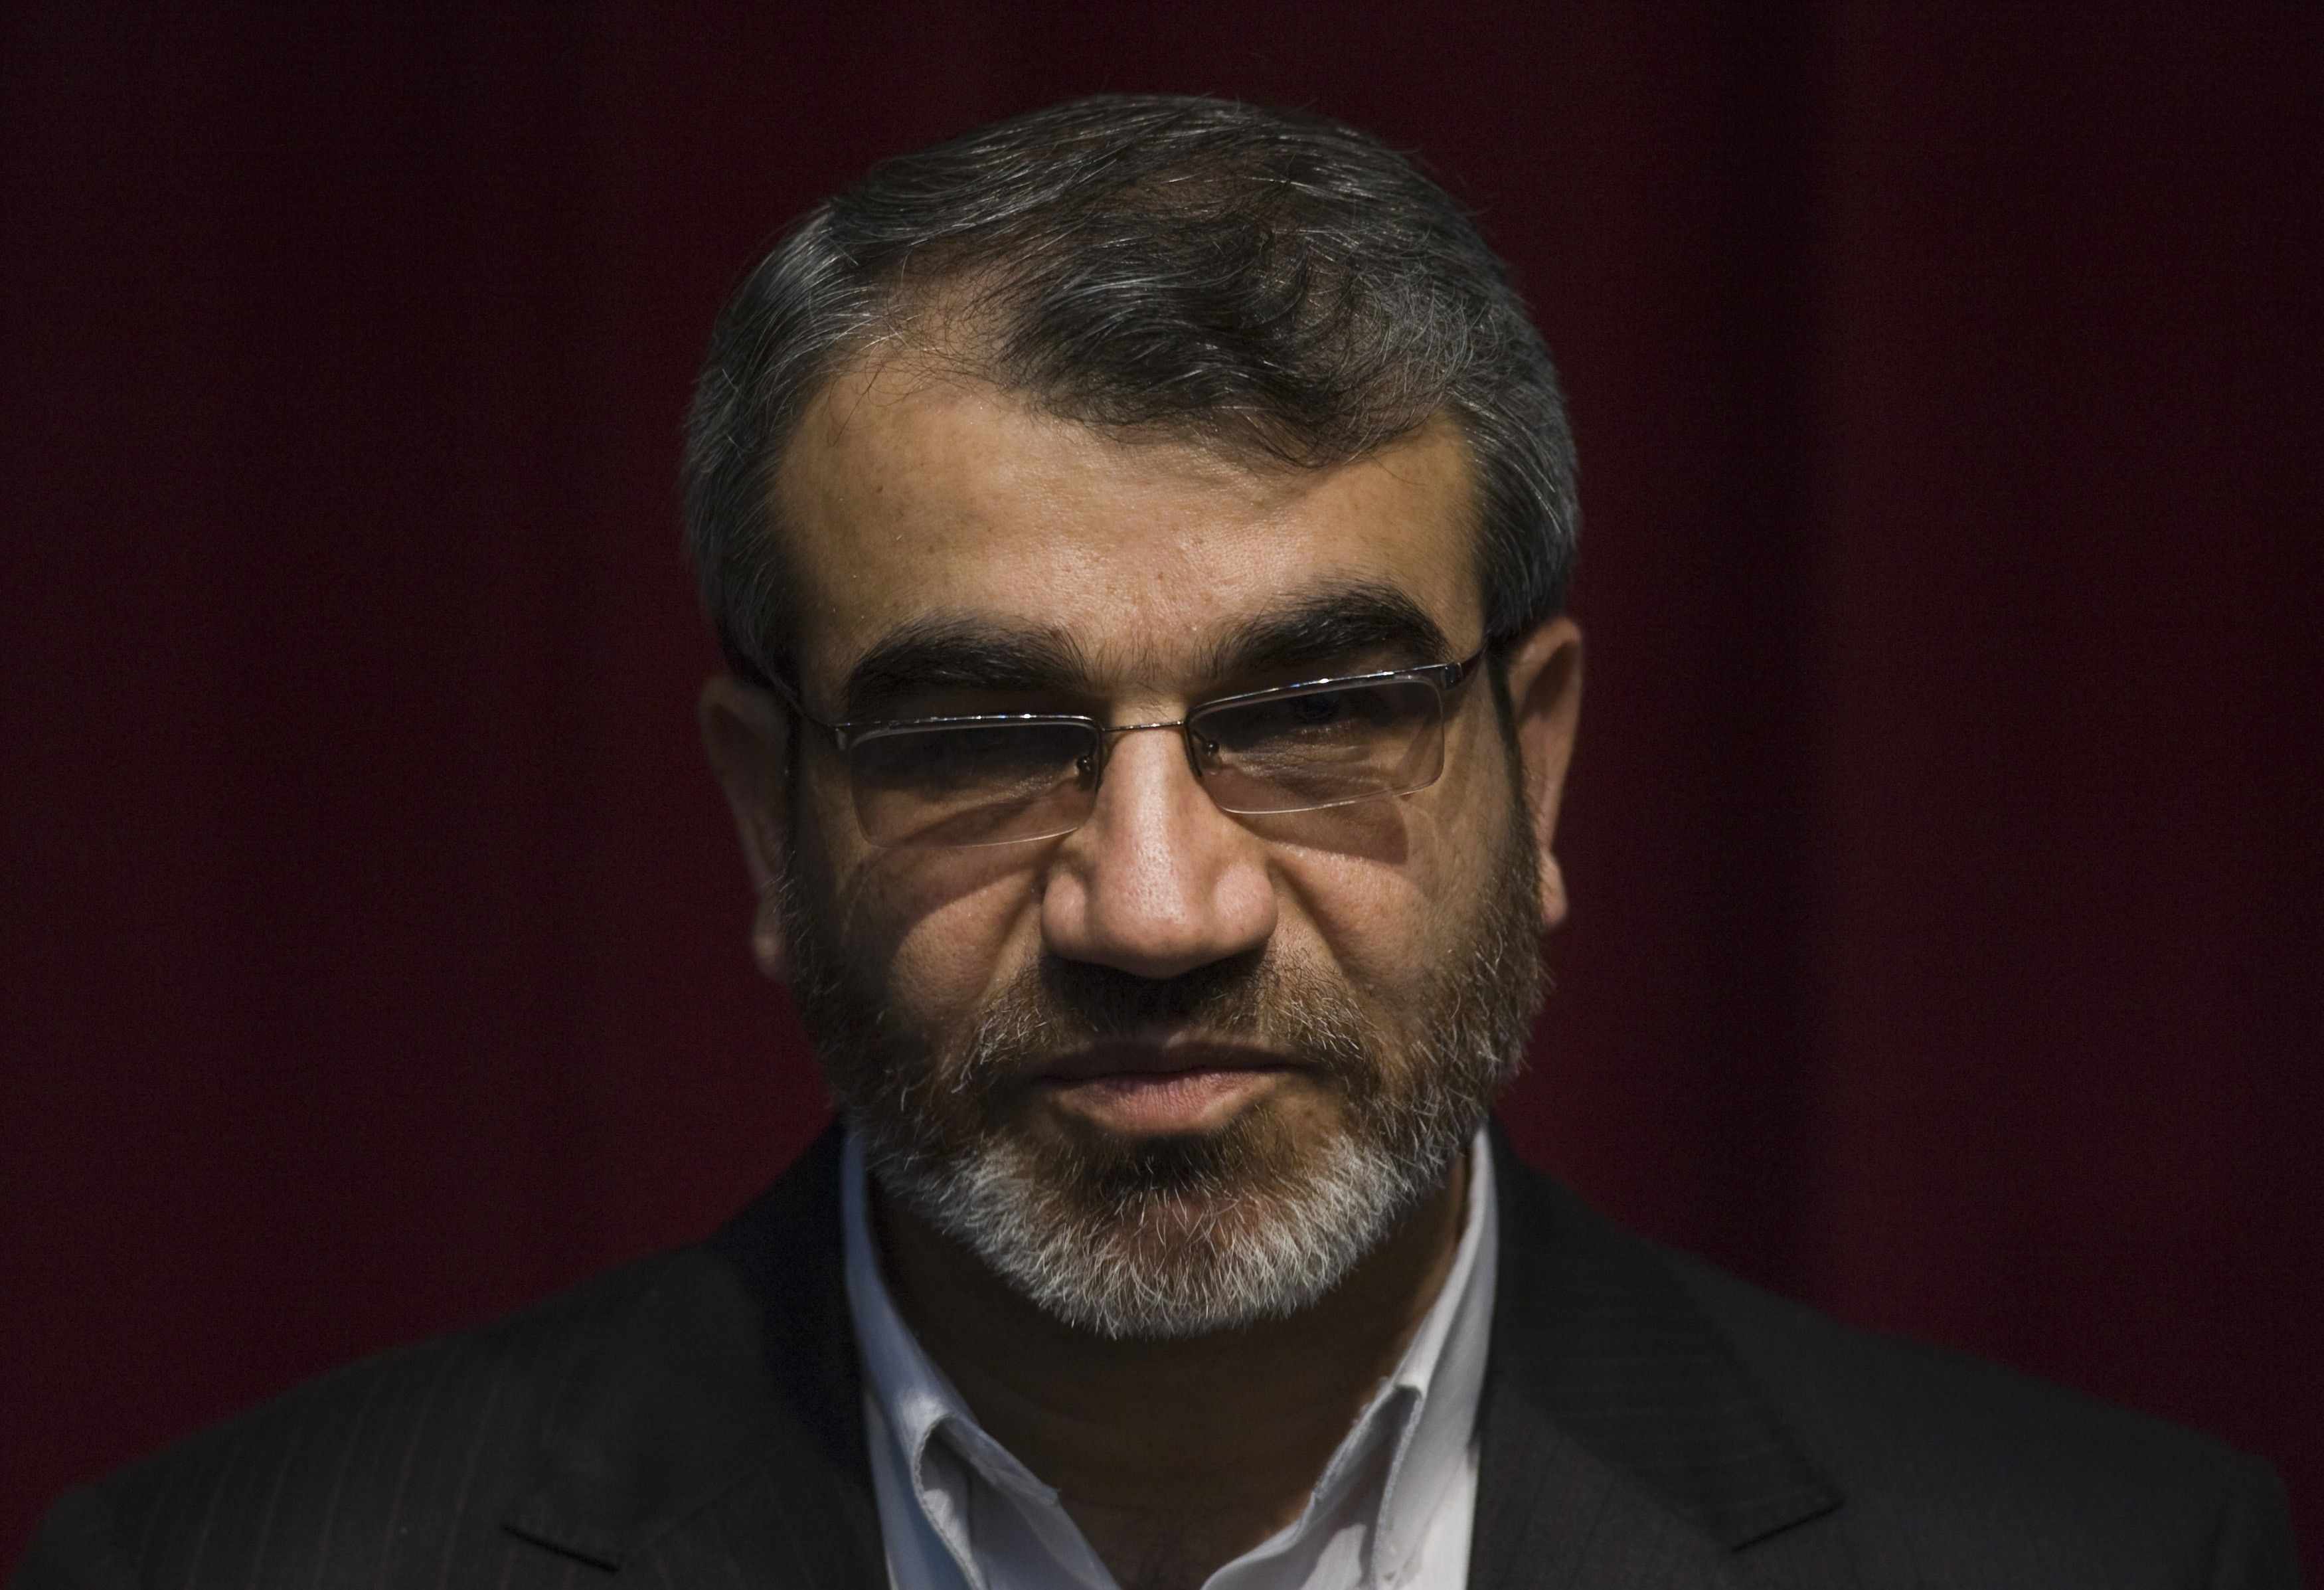 FILE PHOTO: Abbasali Kadkhodai, spokesman of the Guardian Council, looks on while attending a news conference in Tehran.REUTERS/